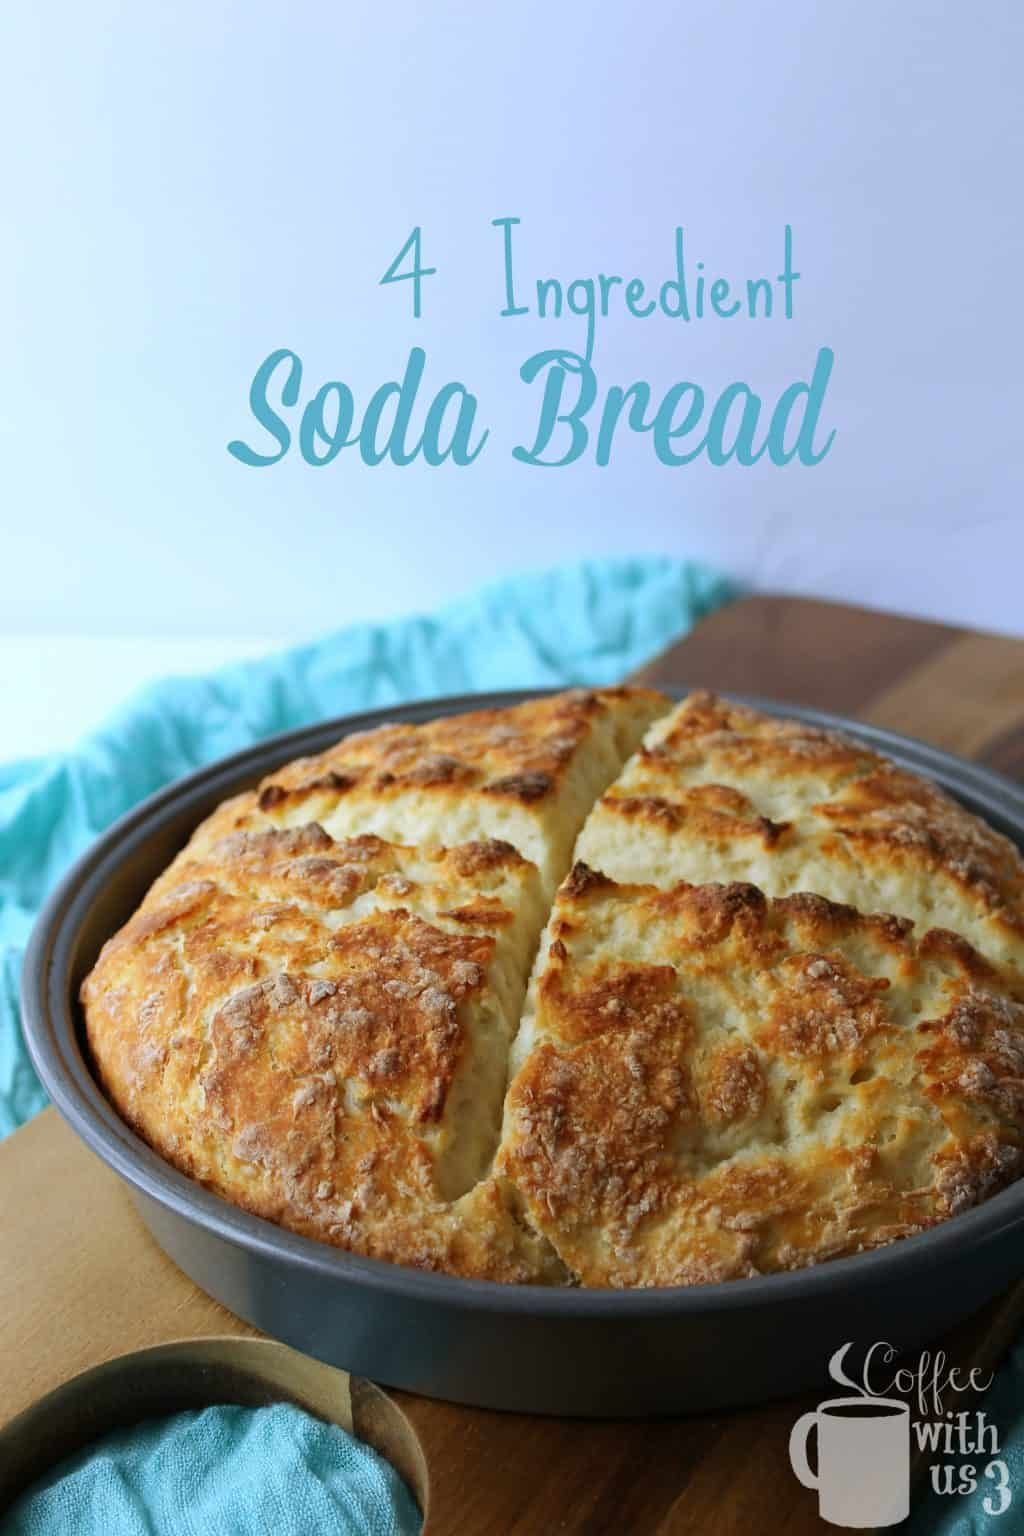 Just 4 ingredients and 45 minutes to have fresh, homemade soda bread on the table!